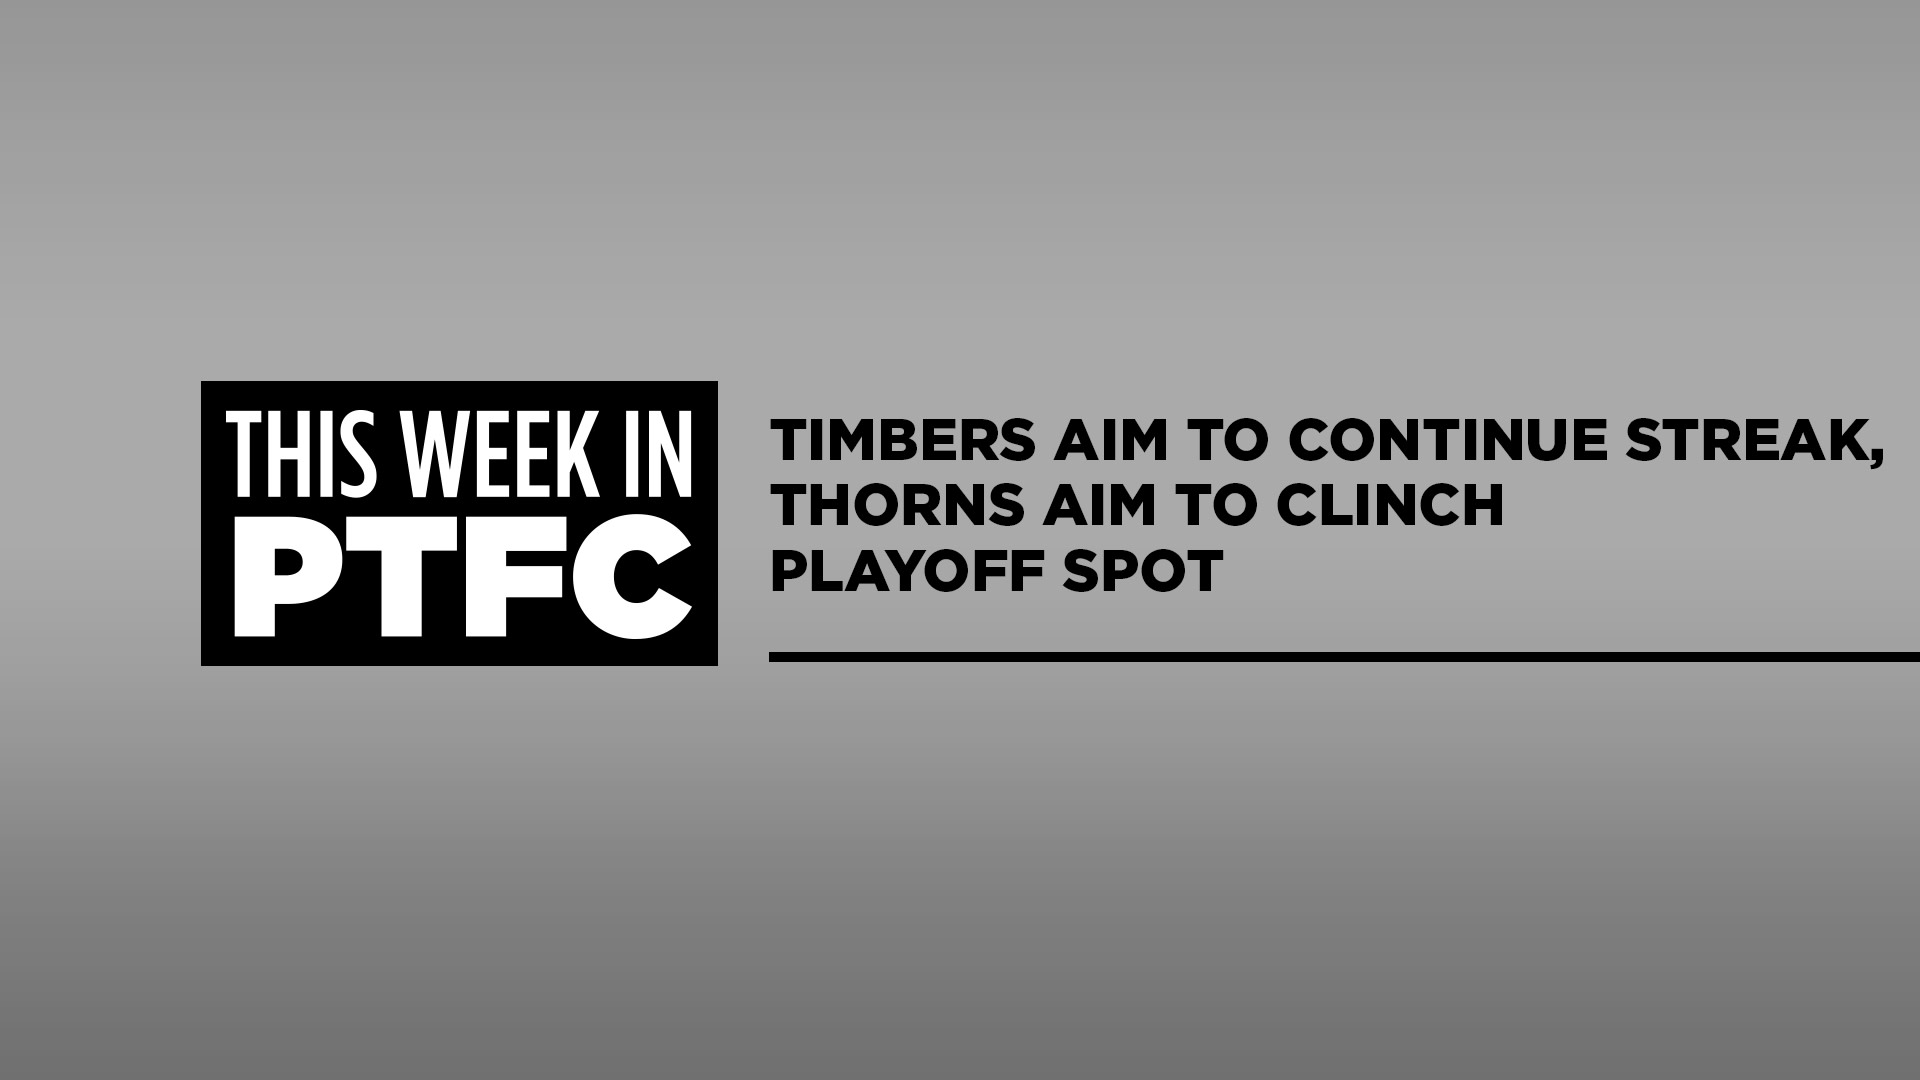 This Week in PTFC | Timbers play RSL, Thorns in action with playoff spot up for grabs | PTFC